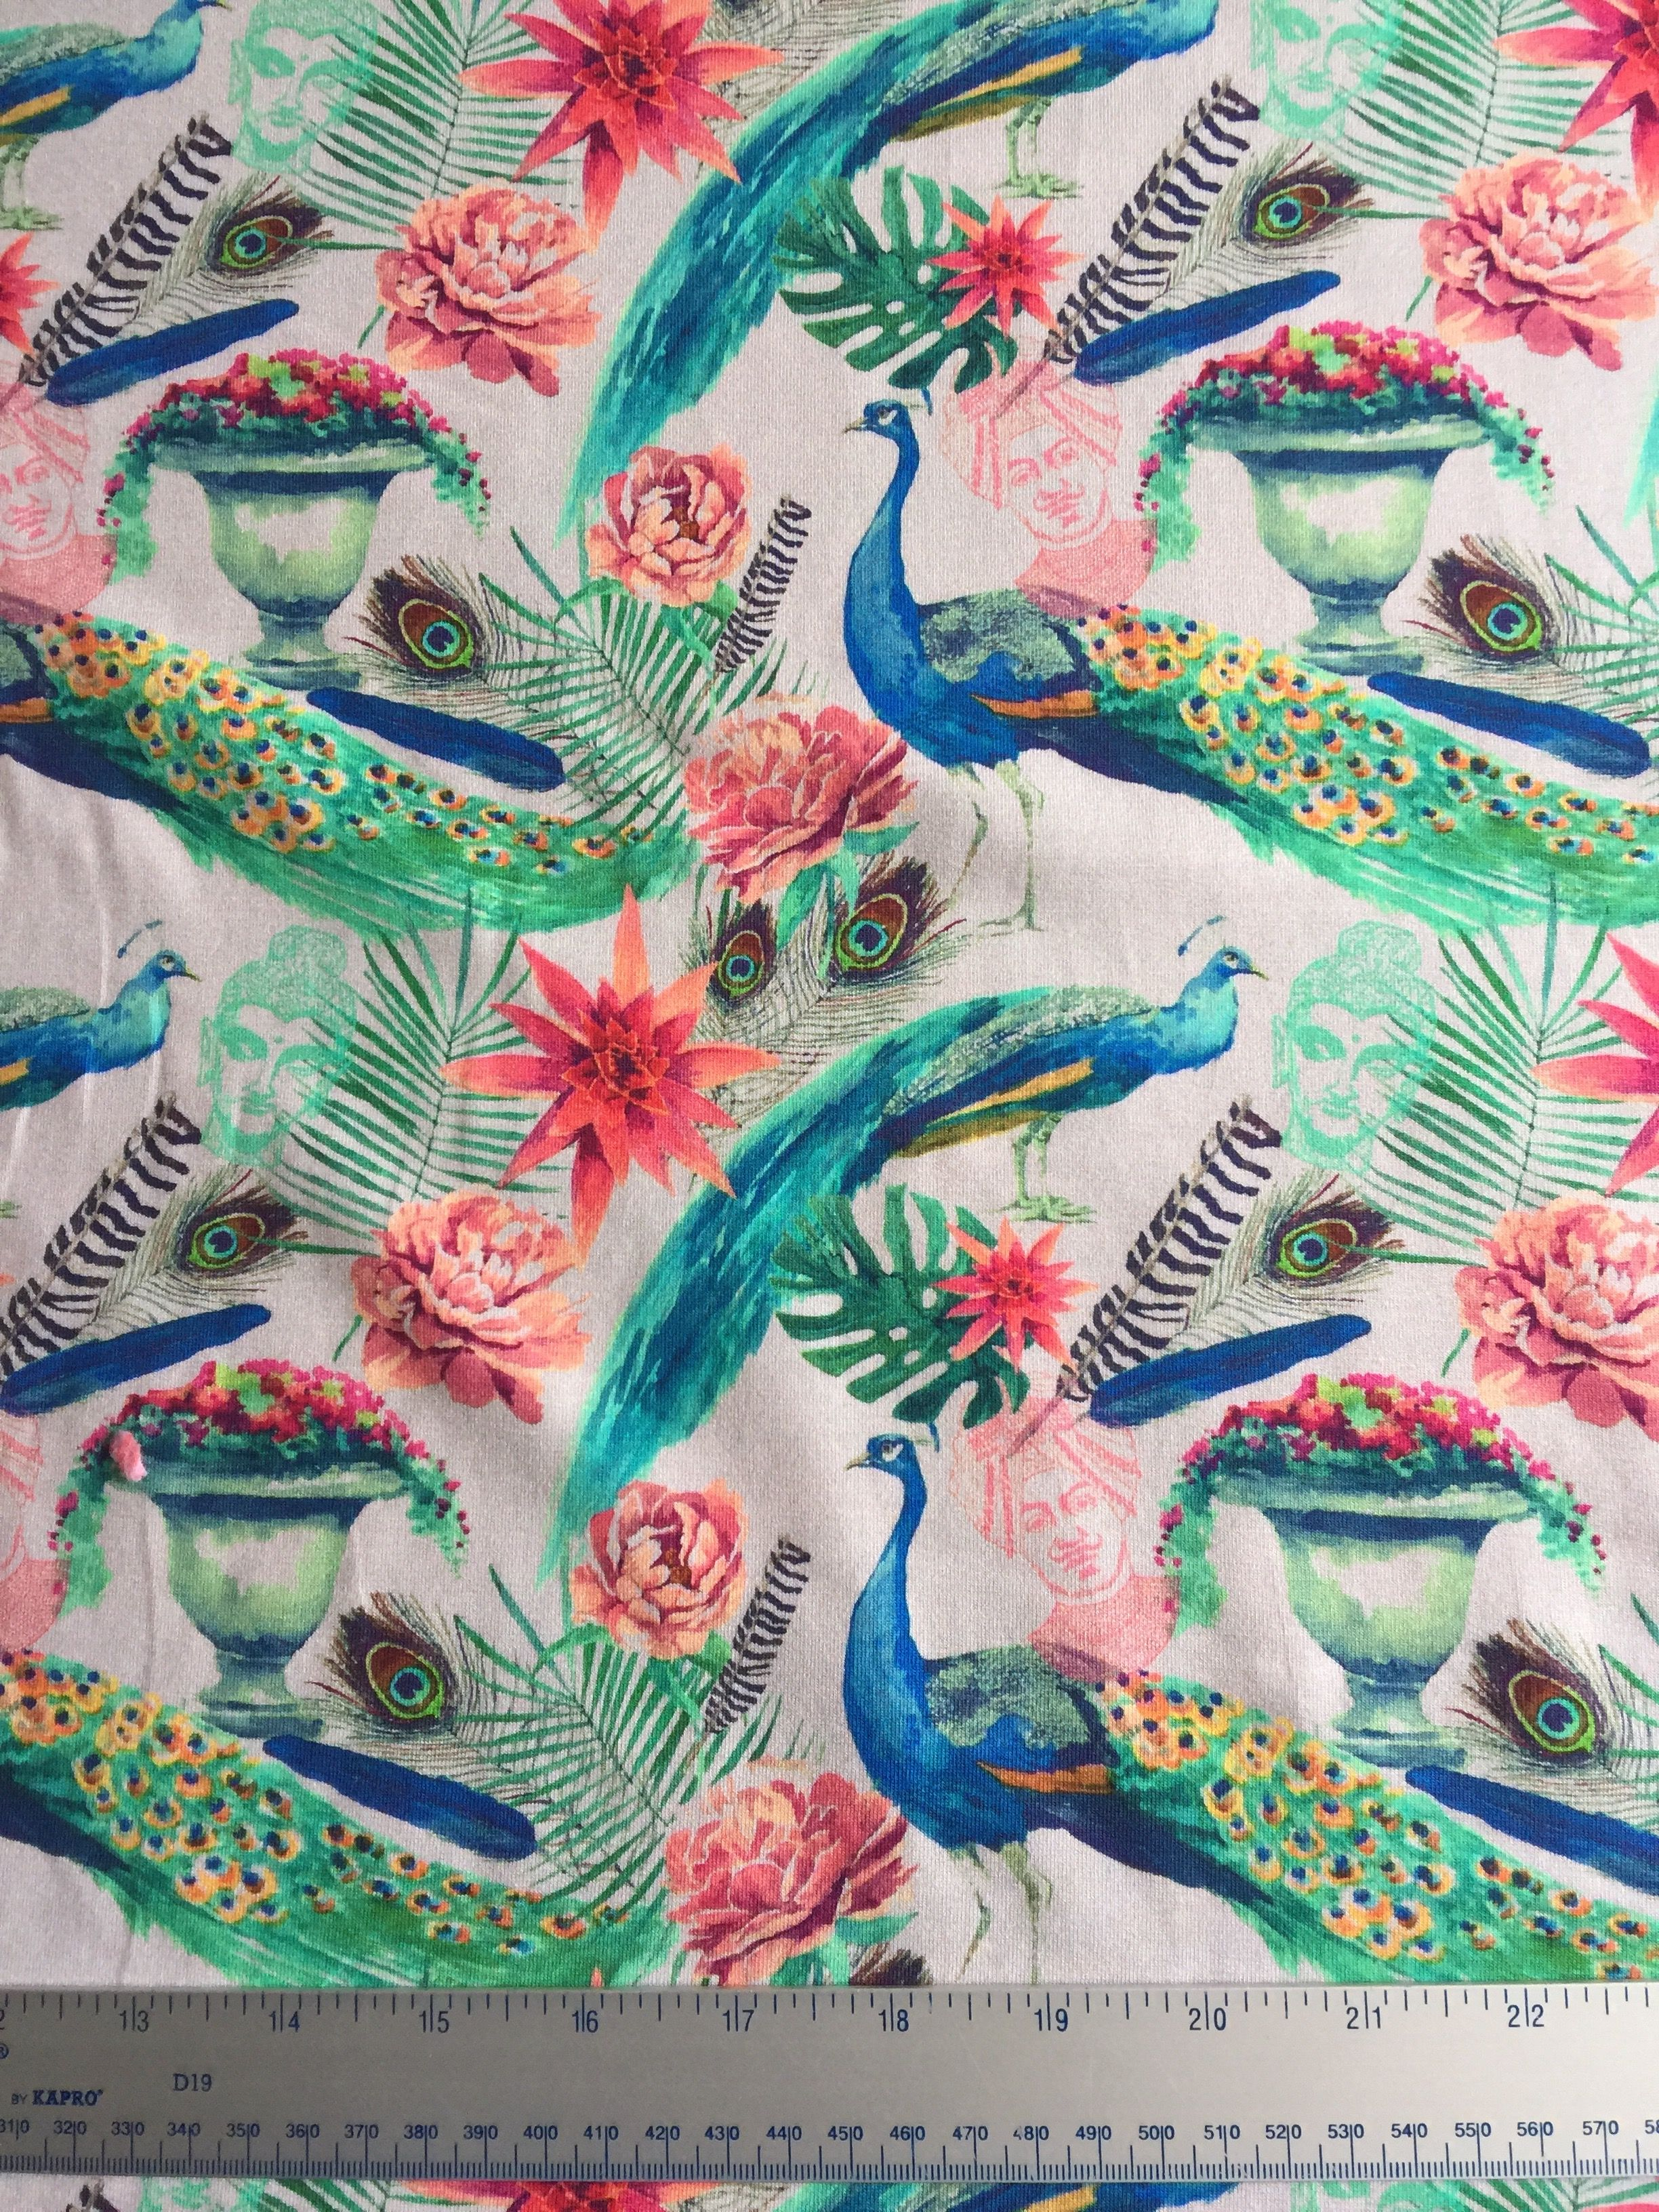 02b559dc09e Peacock Jersey Knit Fabric Floral Bright Digital | Jersey Fabric ...